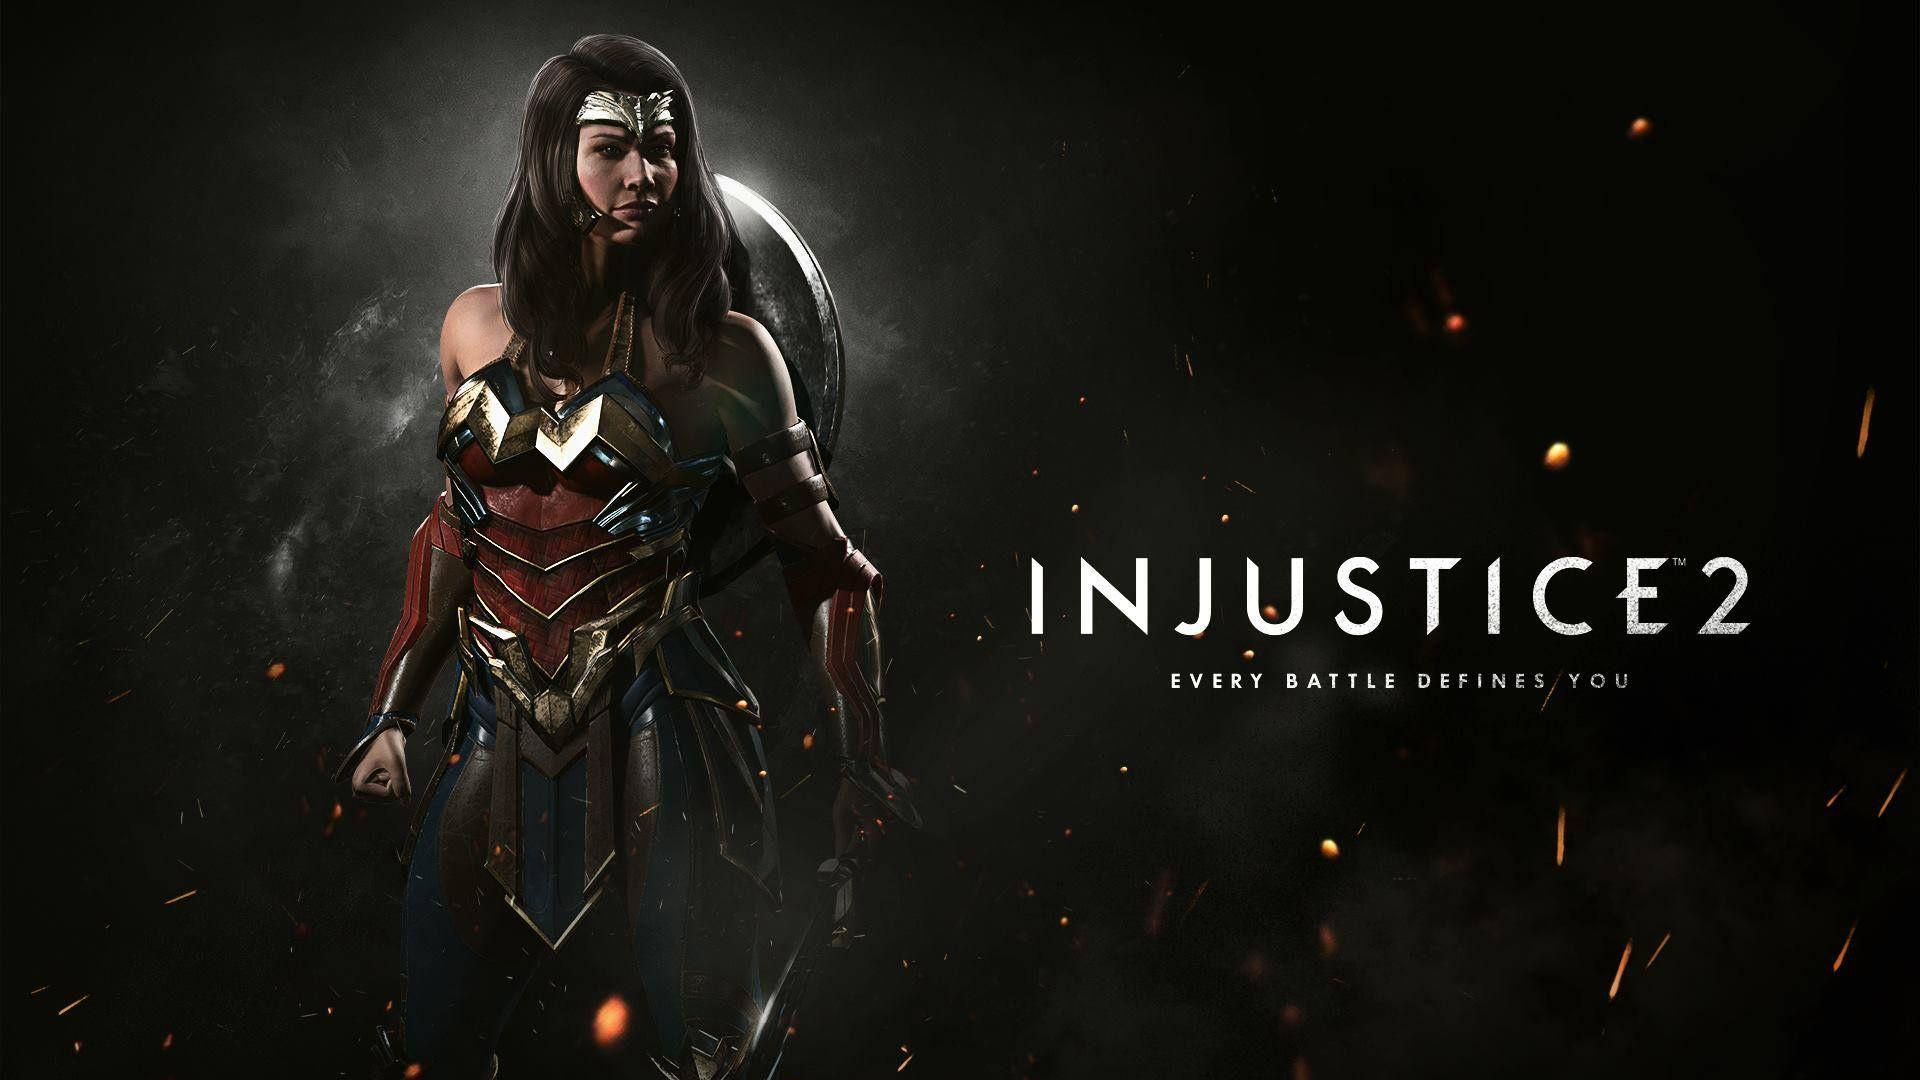 Injustice 2 Desktop Wallpaper